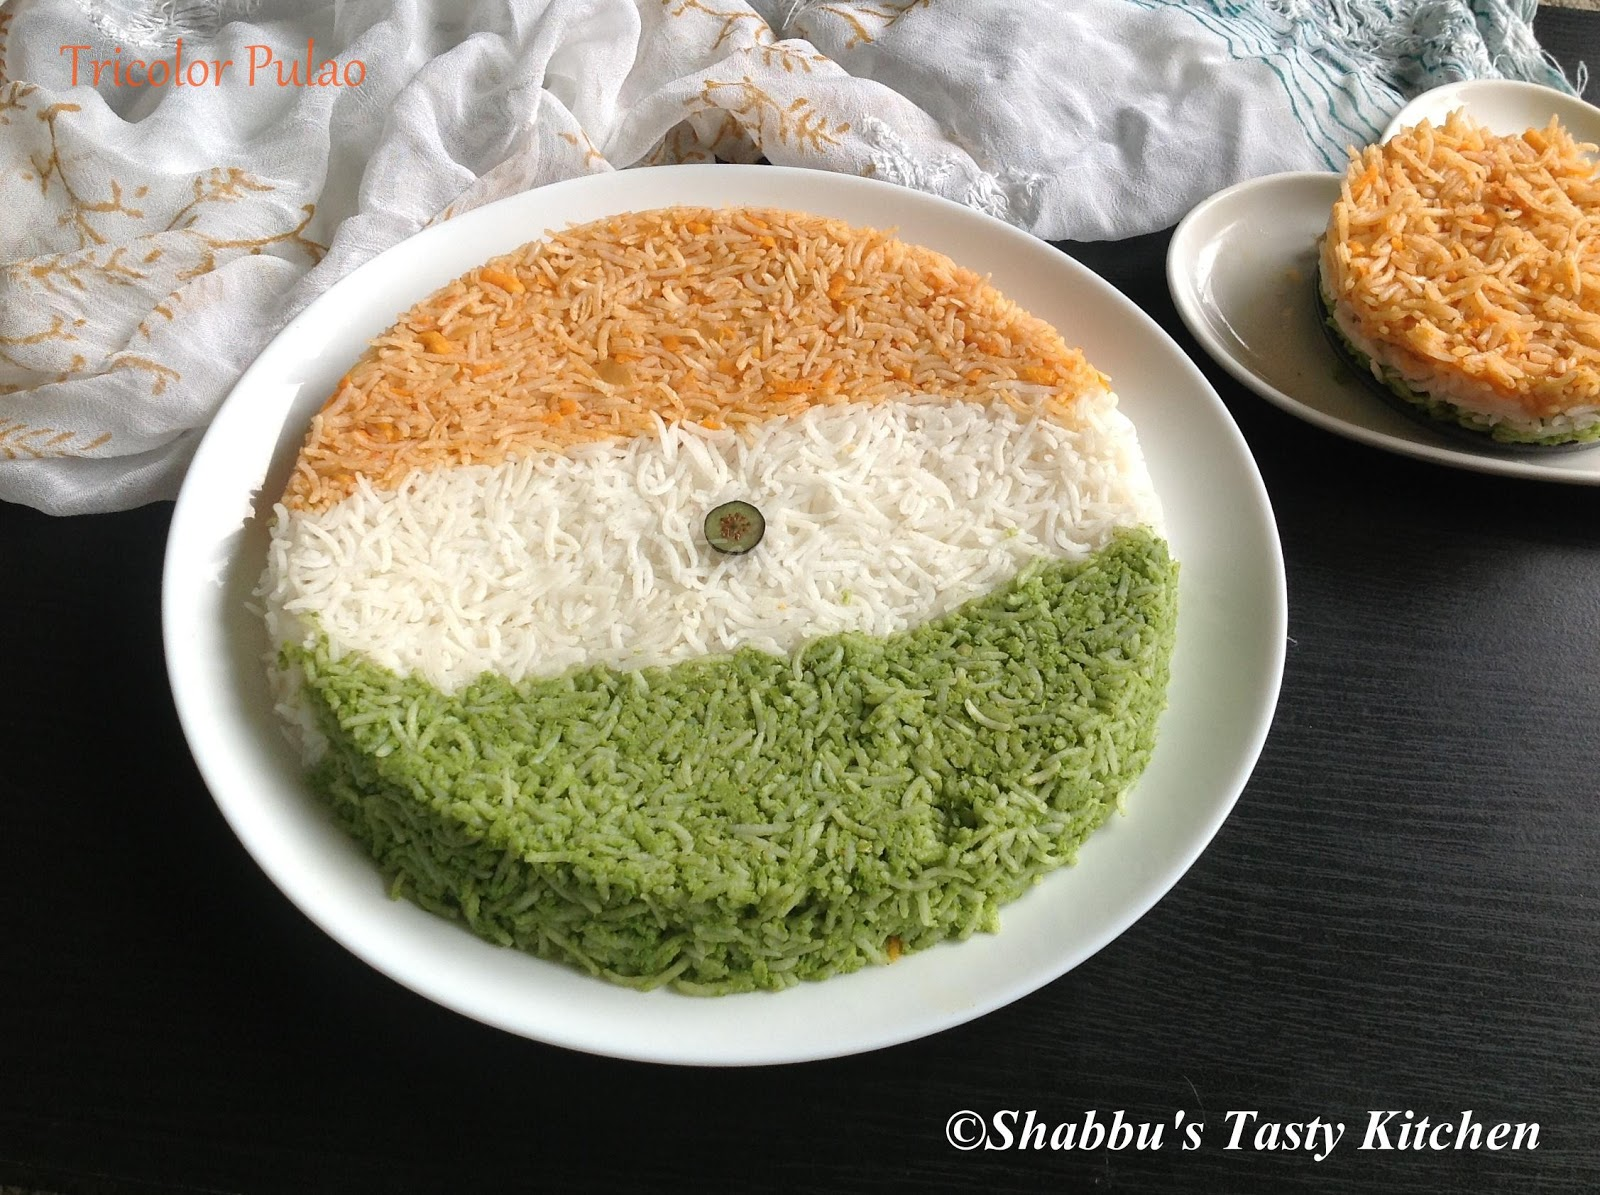 How to connect a plate Tricolor 2